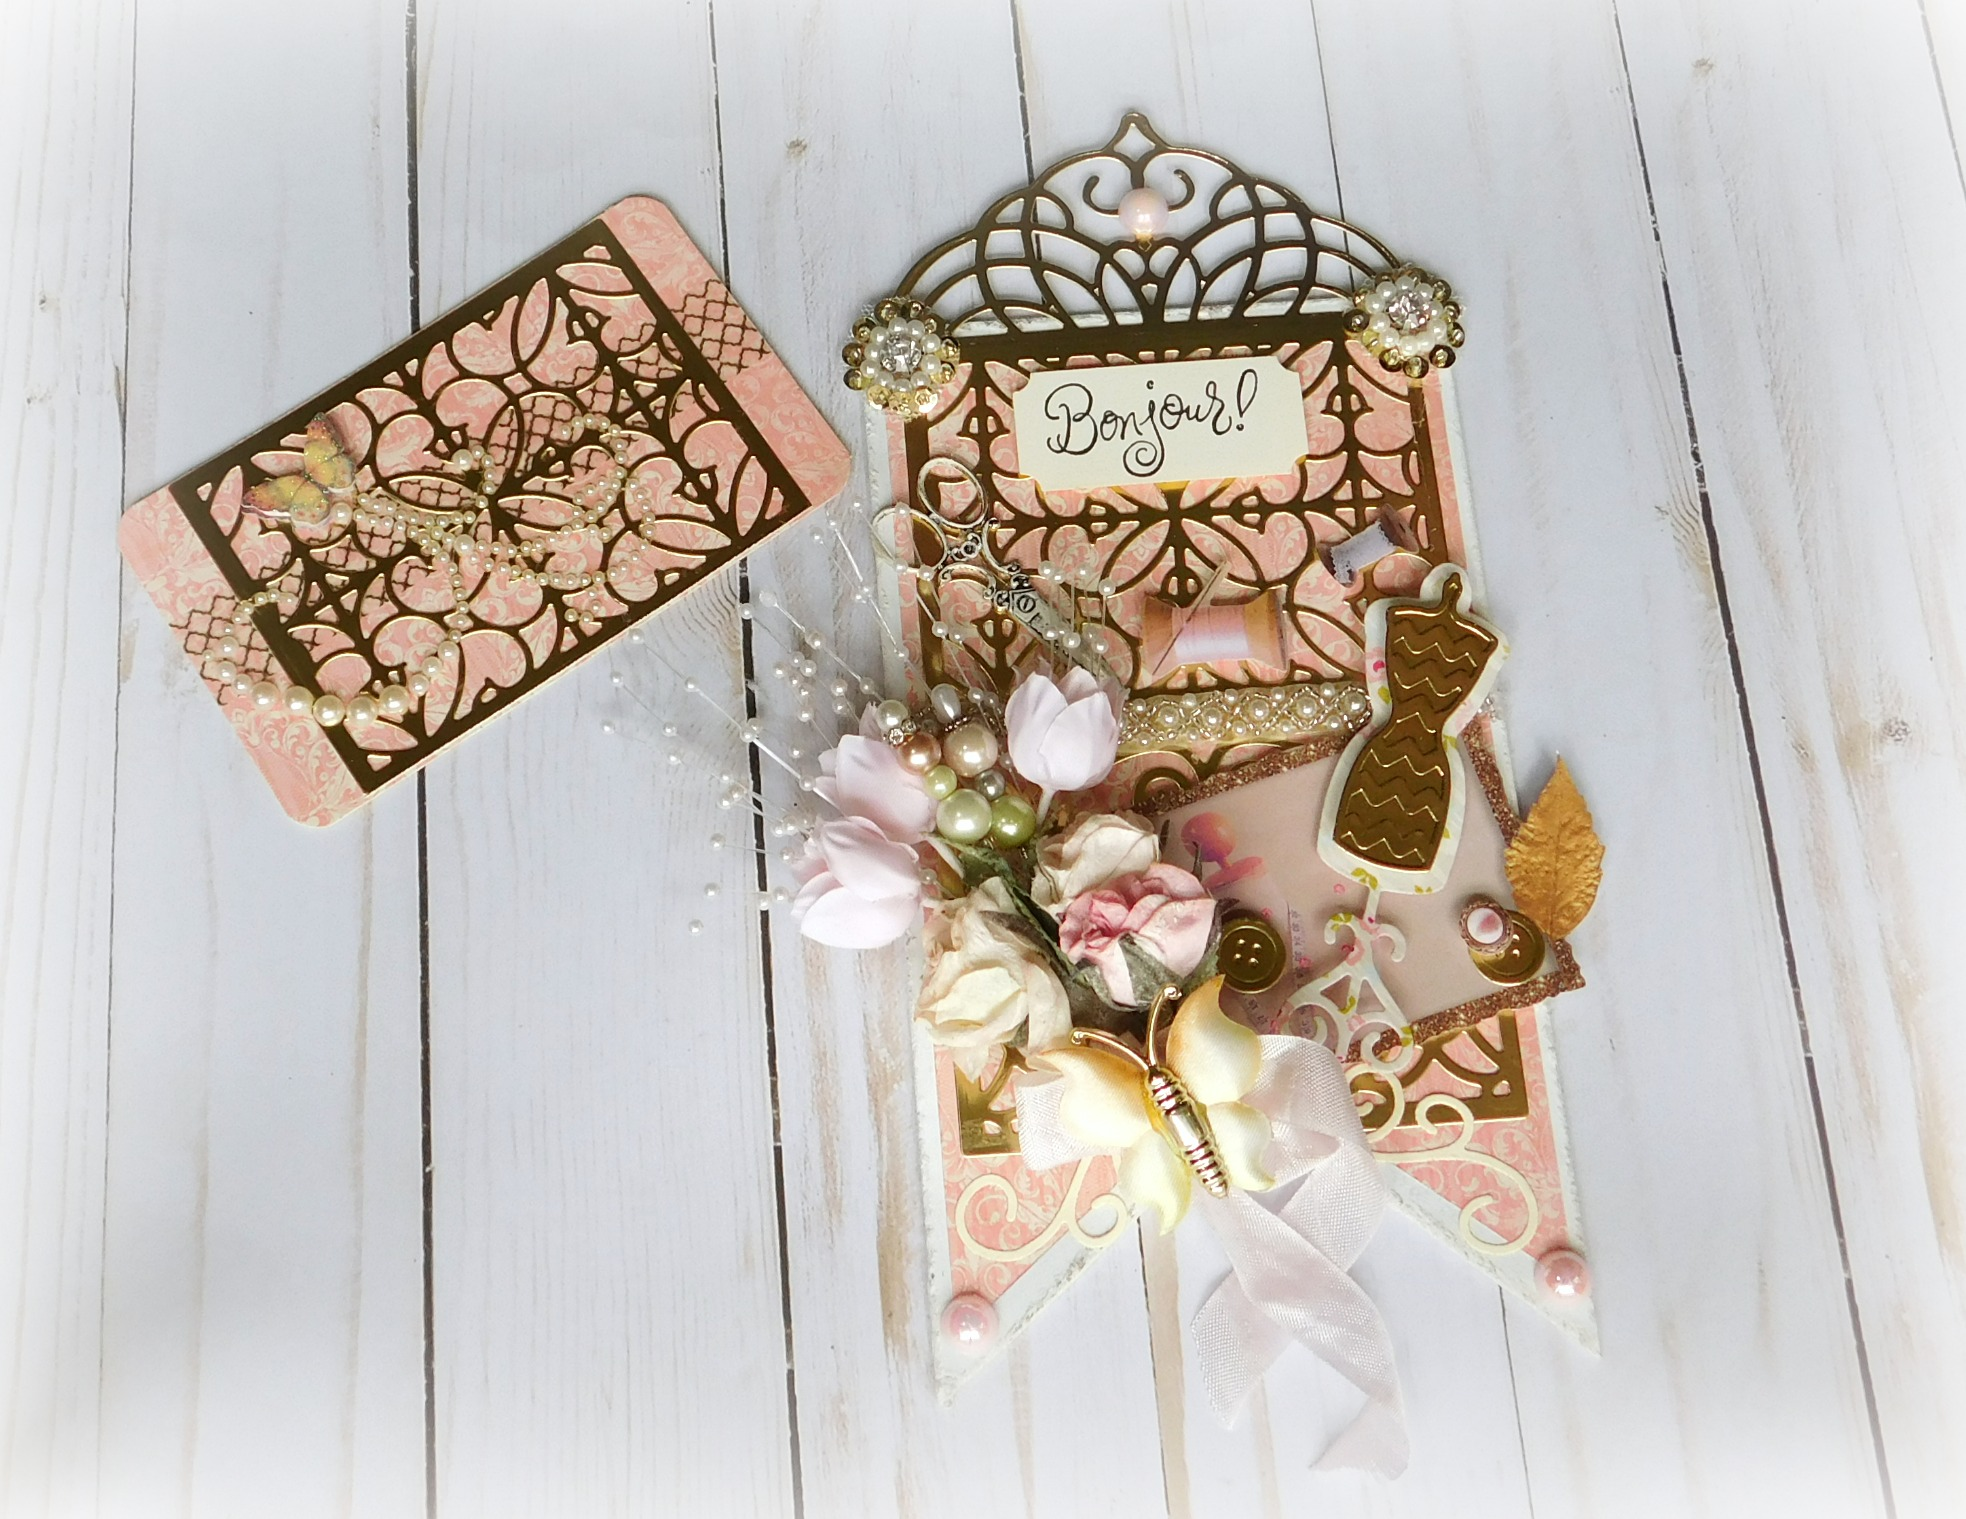 http://www.decor8yourlife.com/wp-content/uploads/2017/06/Shabby-Chic-Tag-and-IC-Card.jpeg